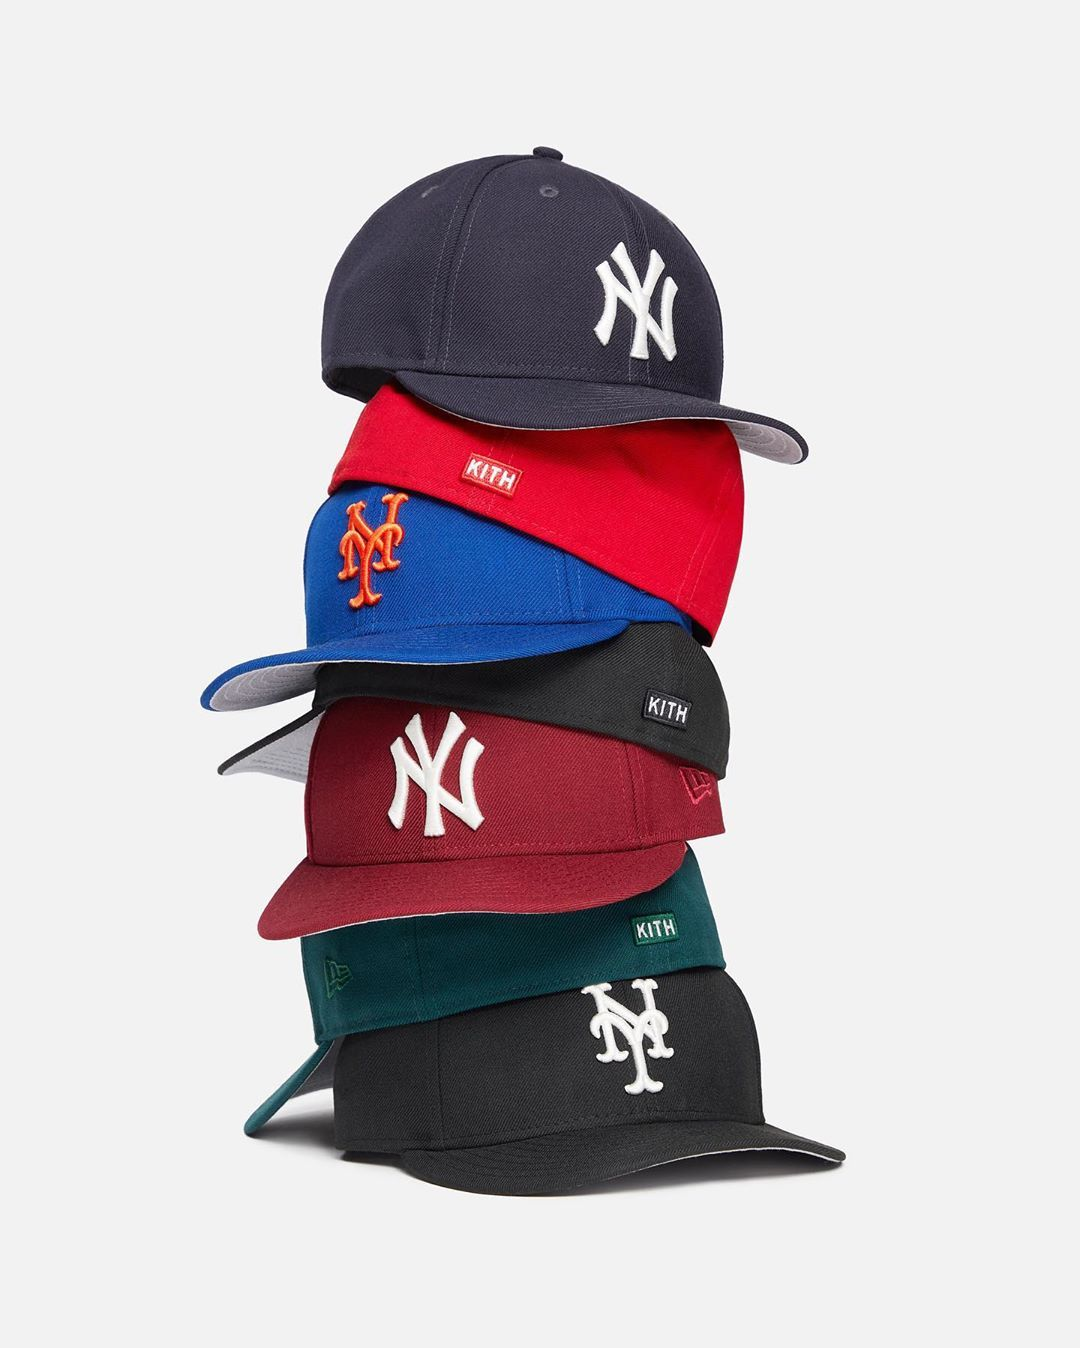 Kith On Instagram Kith X New Era Yankees Mets Low Profile Fitteds Available Now On Kith Com In 2020 Trucker Hat New Era Yankees Kith